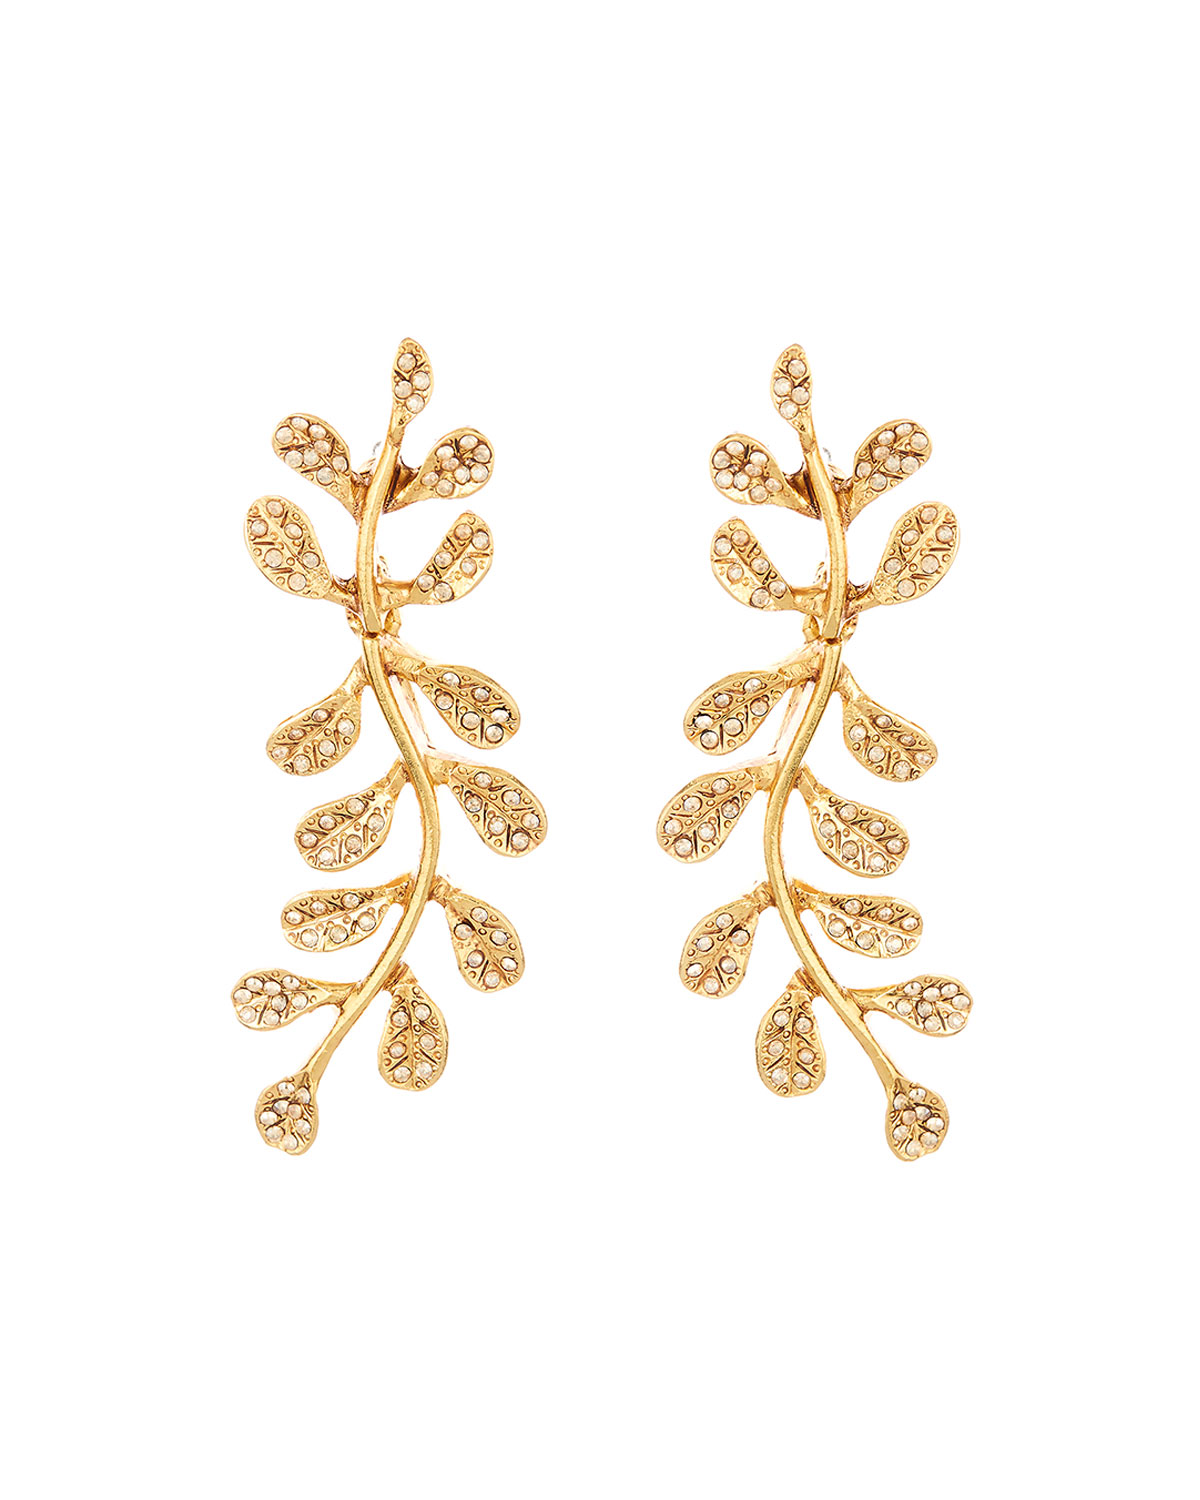 Oscar De La Renta Jewelry CRYSTAL PAVE LEAF EARRINGS